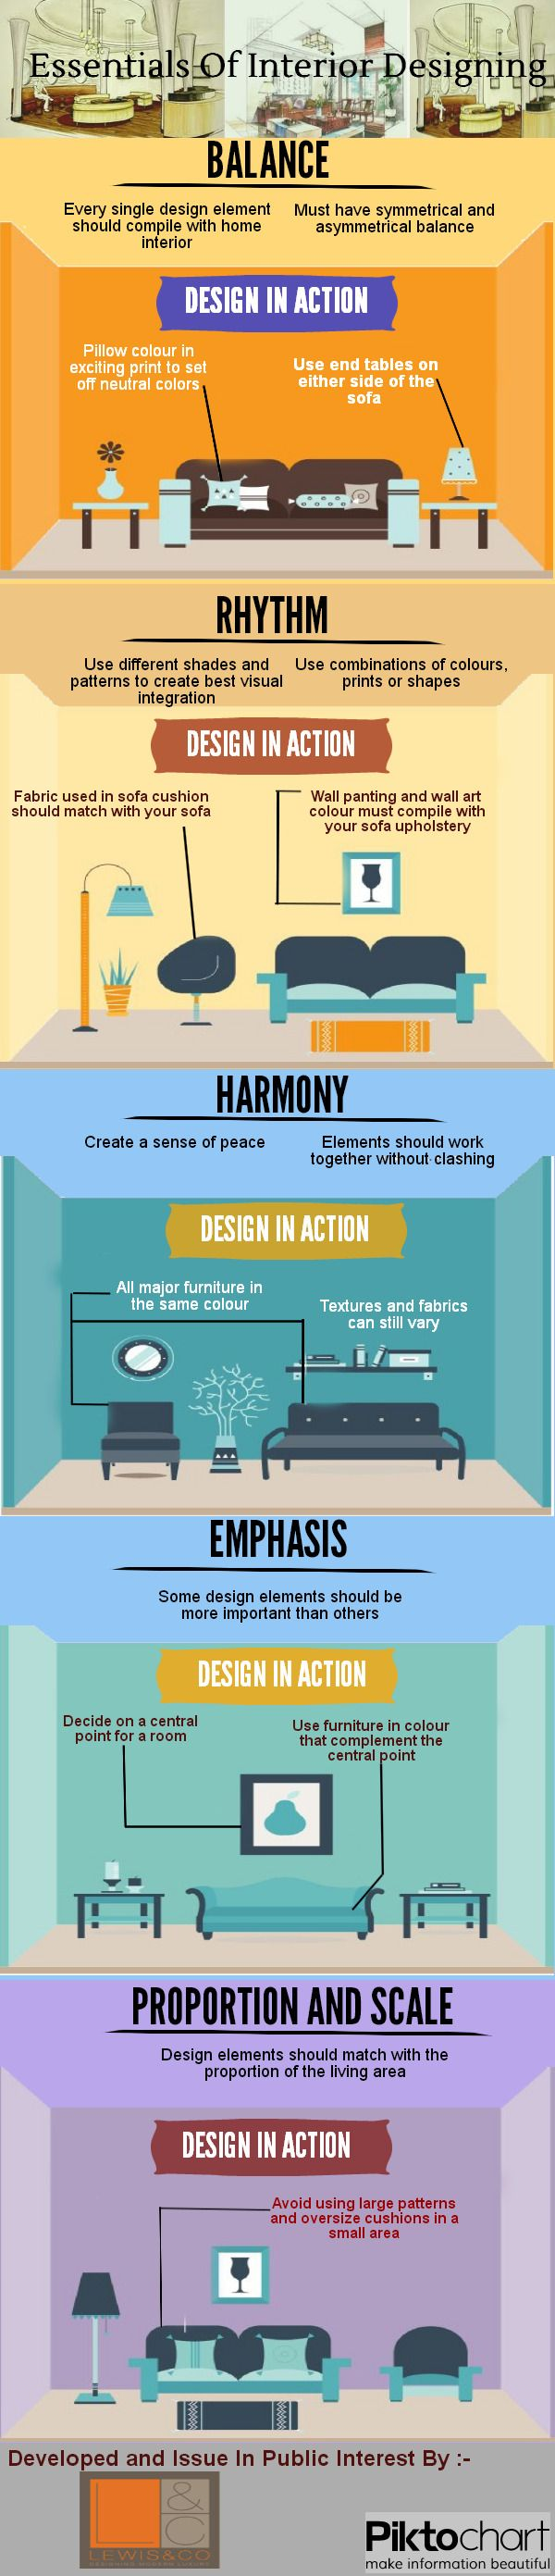 Permalink to Interior Design | Tipsögraphic | Page 2